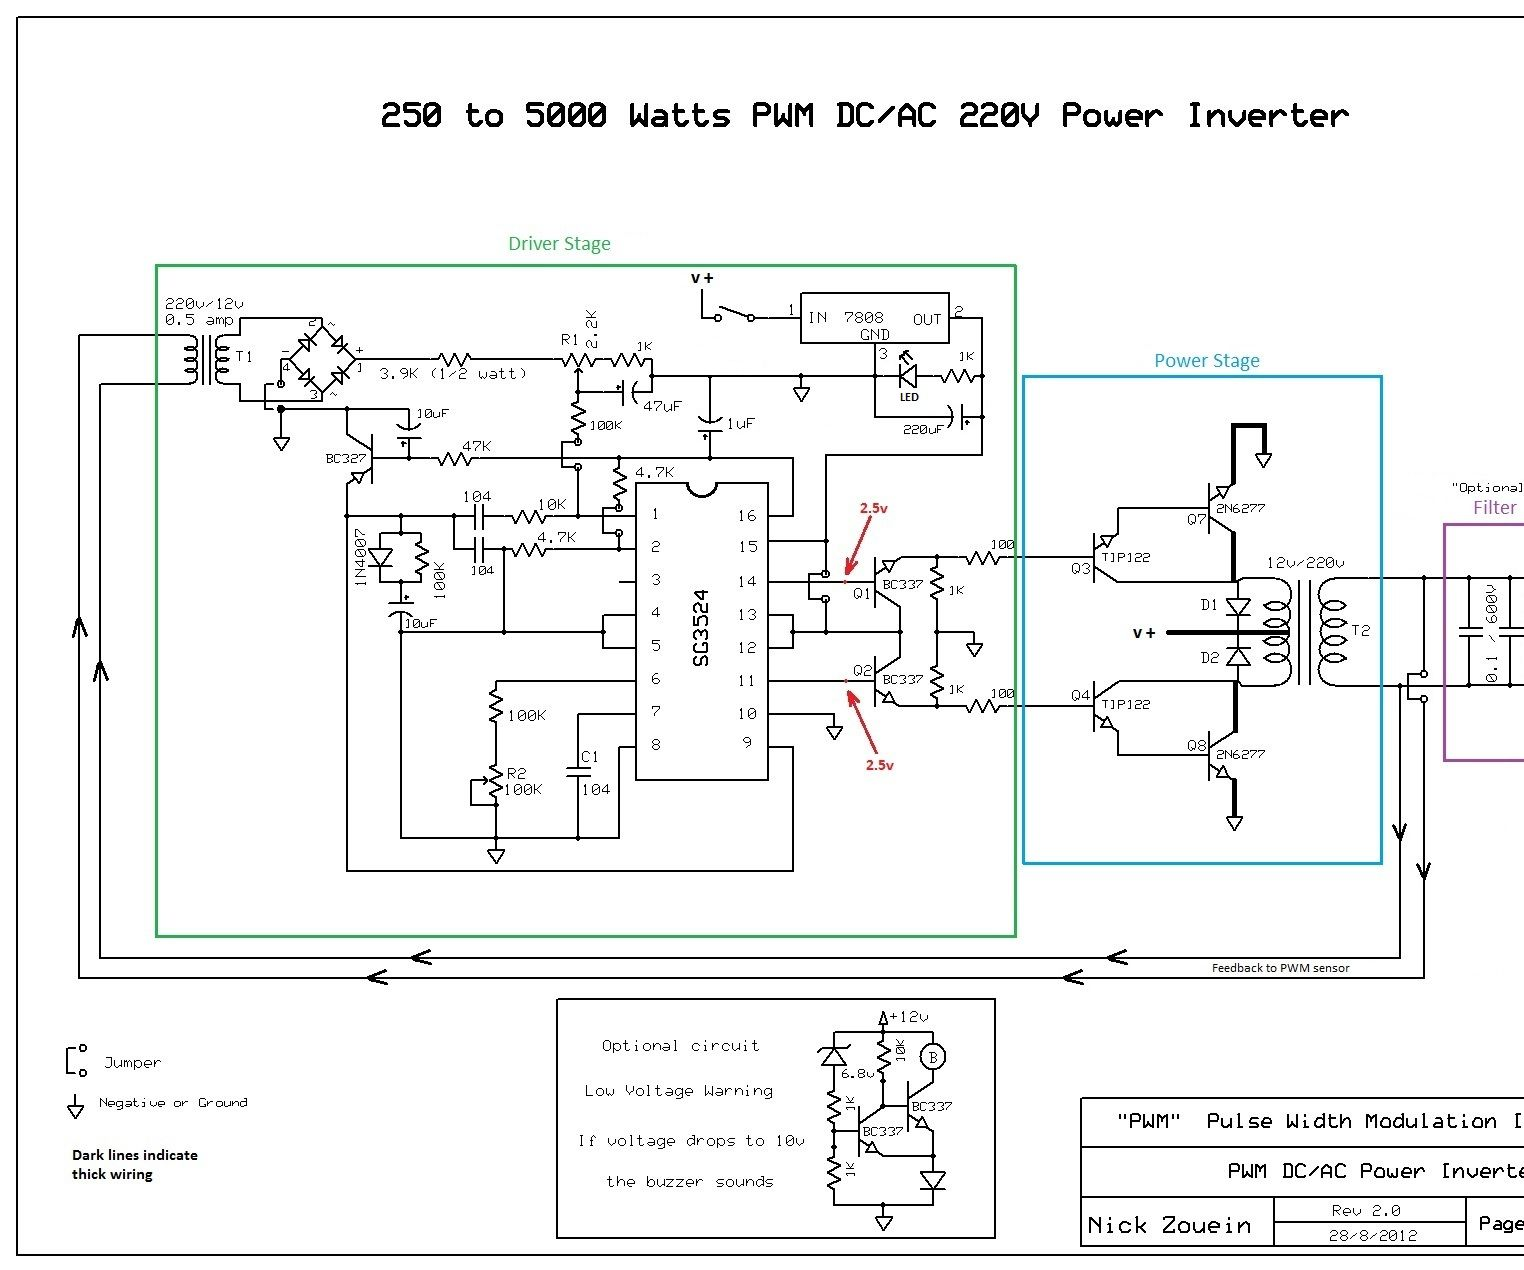 250 To 5000 Watts Pwm Dc Ac 220v Power Inverter Middle Of Run Schematic Wiring Diagram